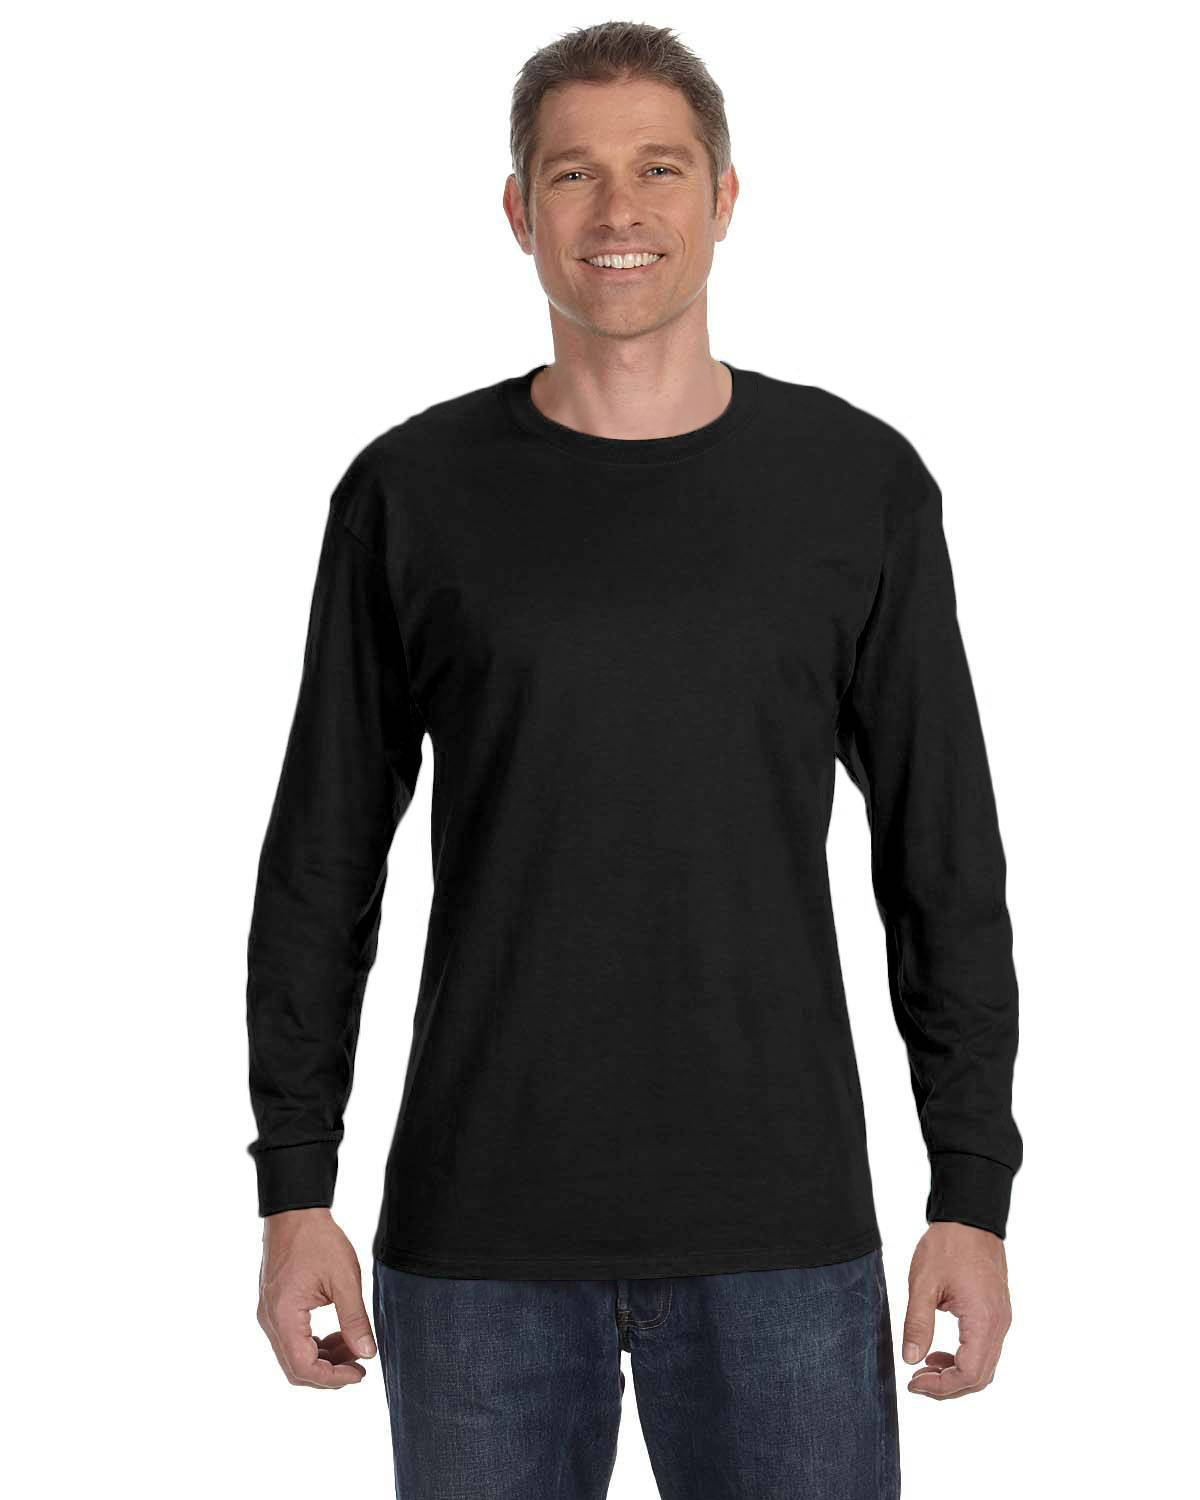 Gildan Adult Heavy Cotton 8.8 oz./lin. yd. Long-Sleeve T-Shirt | G540